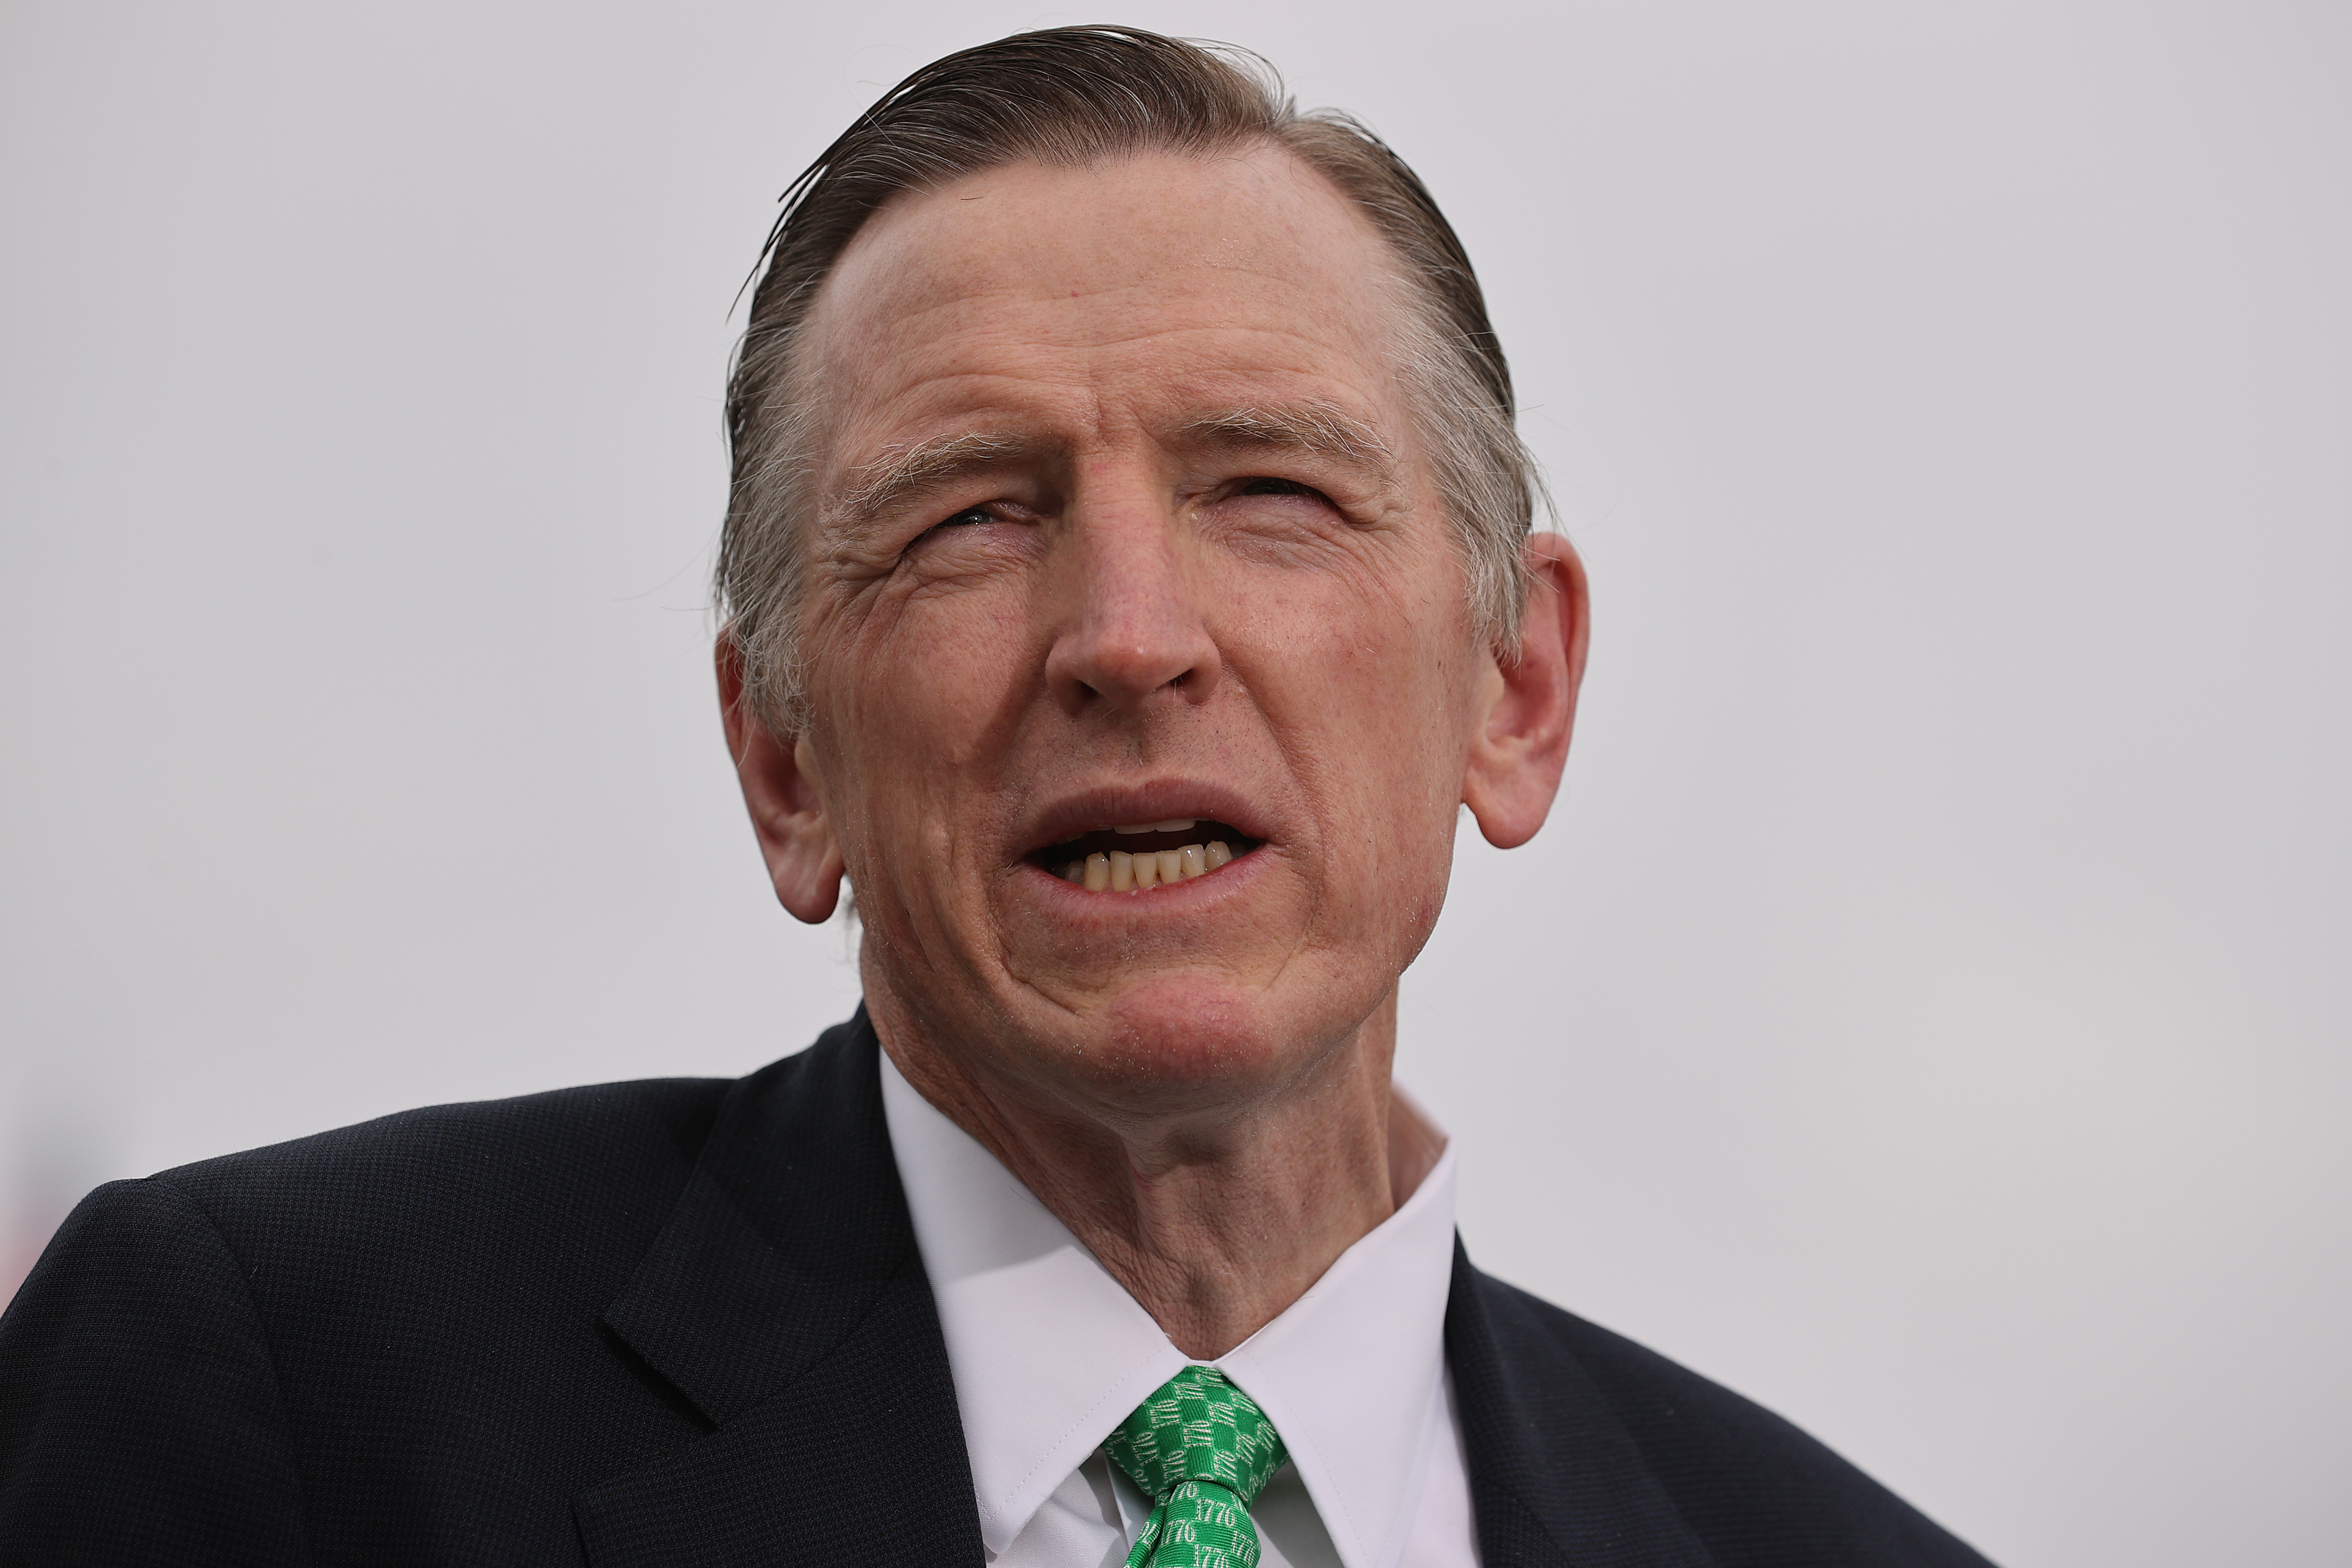 , Paul Gosar Swears He's Not Appearing on an Unhinged QAnon Channel, Saubio Making Wealth